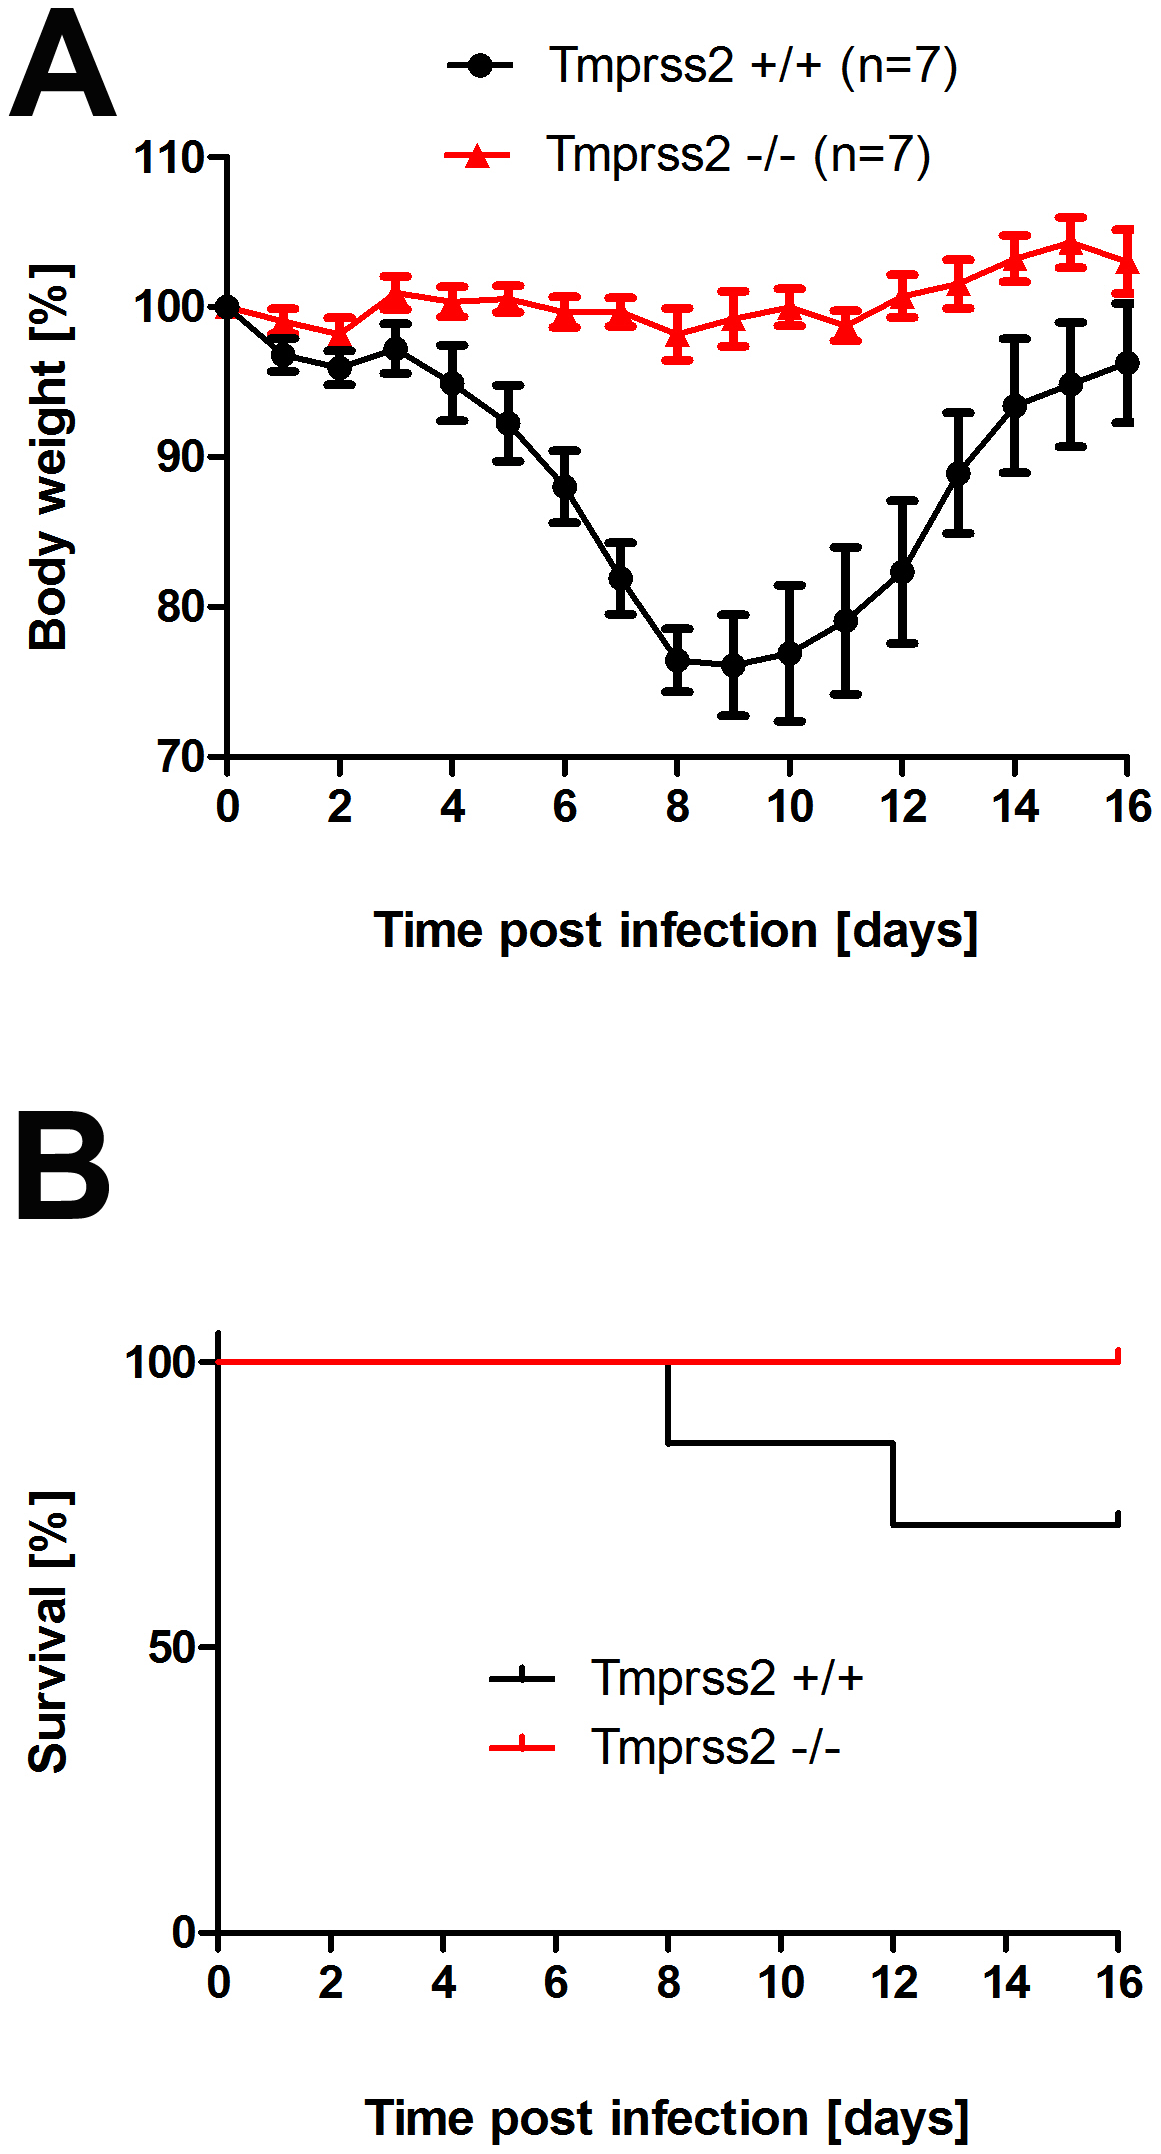 <i>Tmprss2</i> knock-out mice show reduced body weight loss and mortality after infection with low dose H3N2 influenza A virus infections.